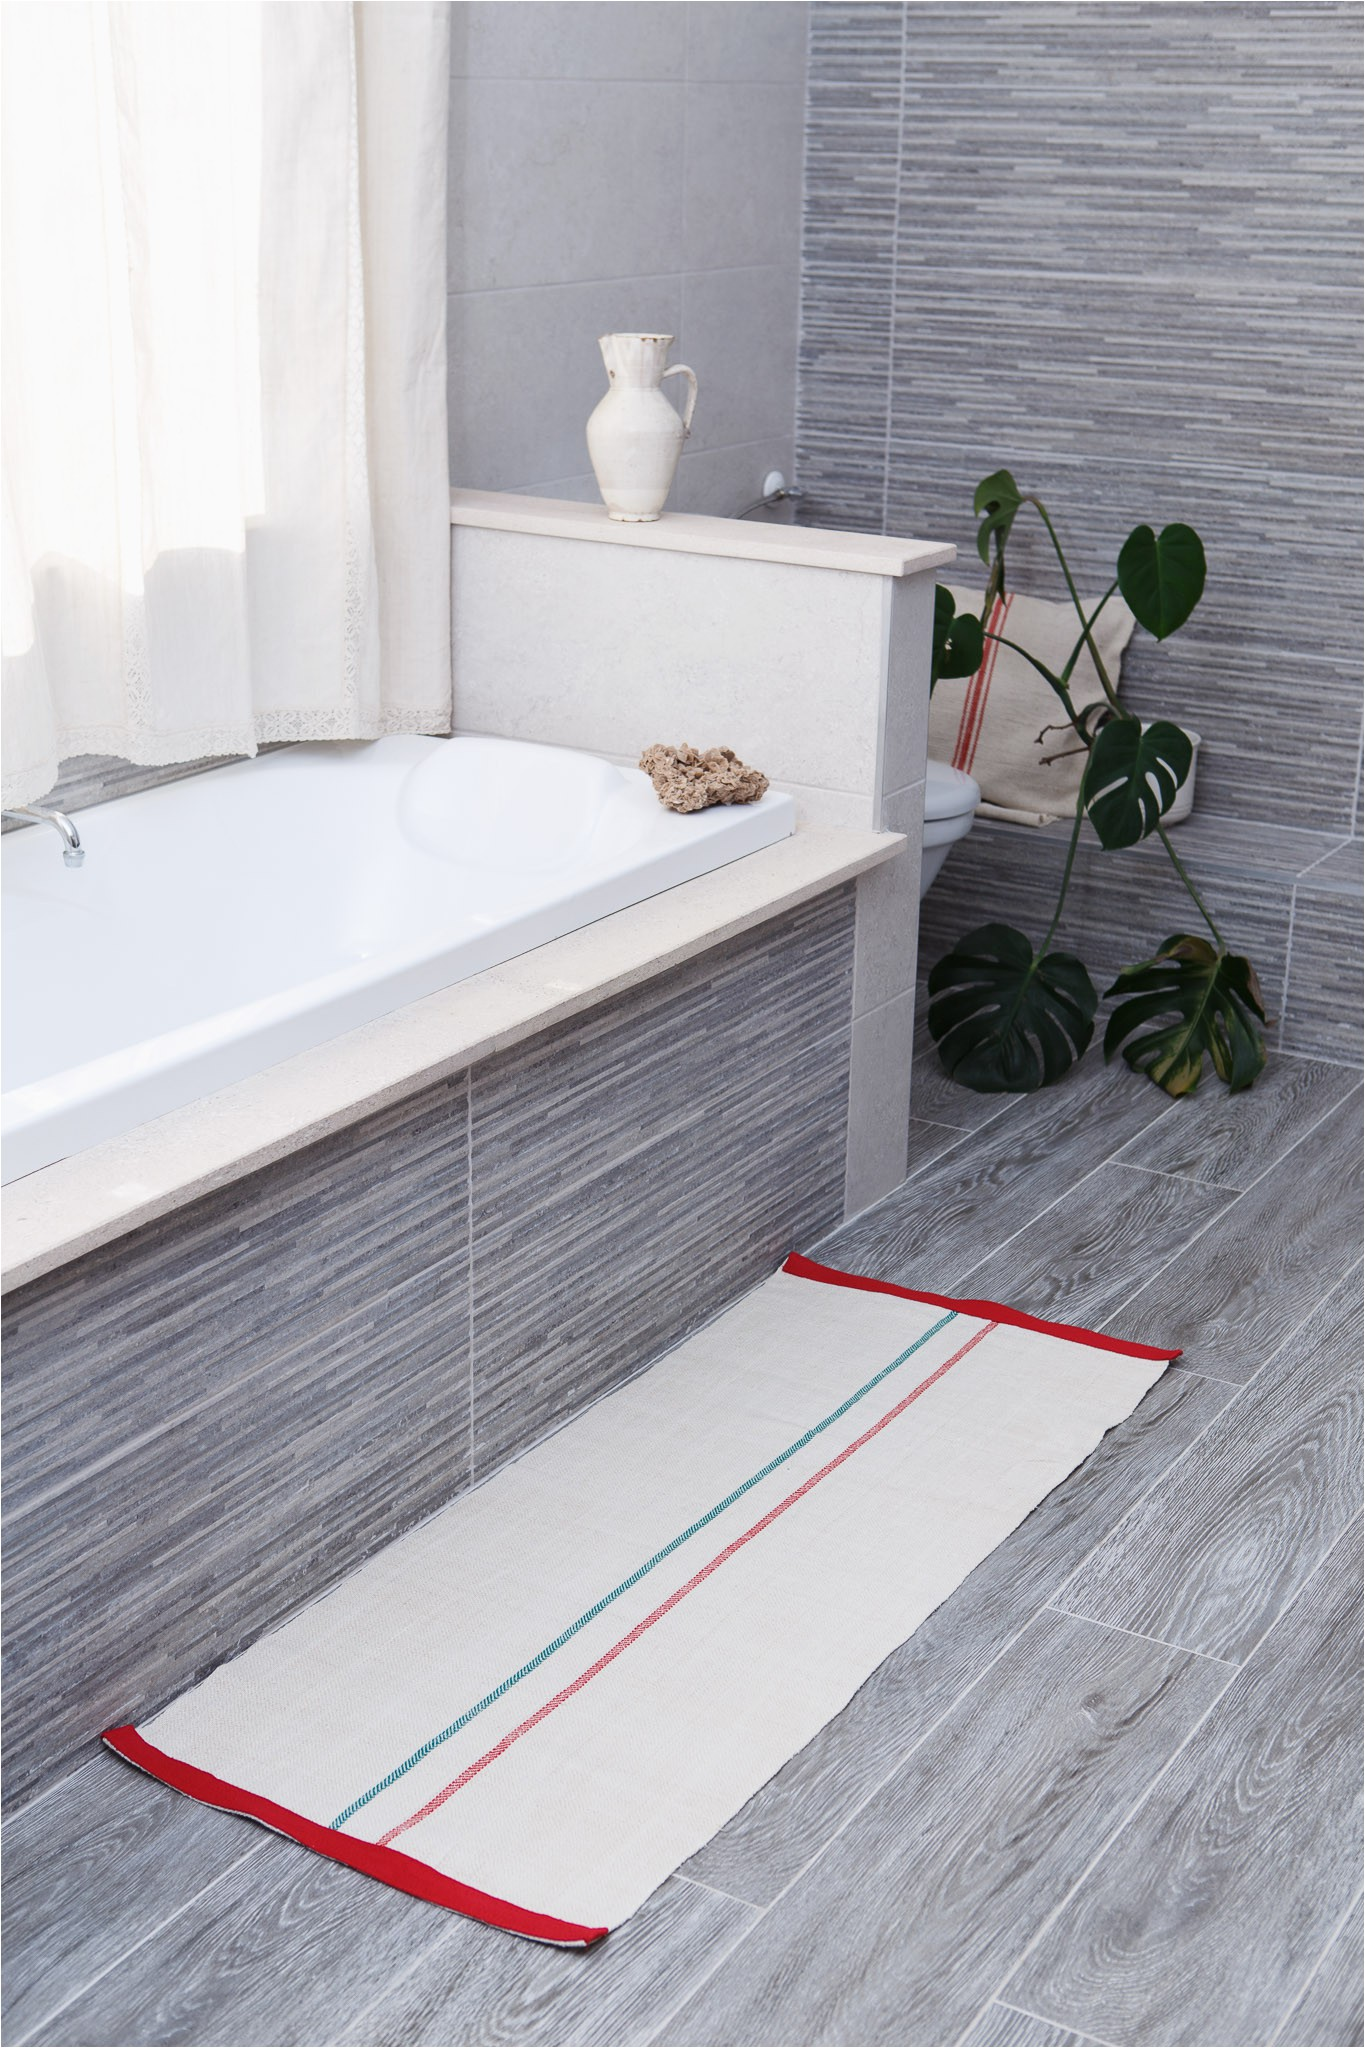 linen and hemp bath rug with red and green stripes